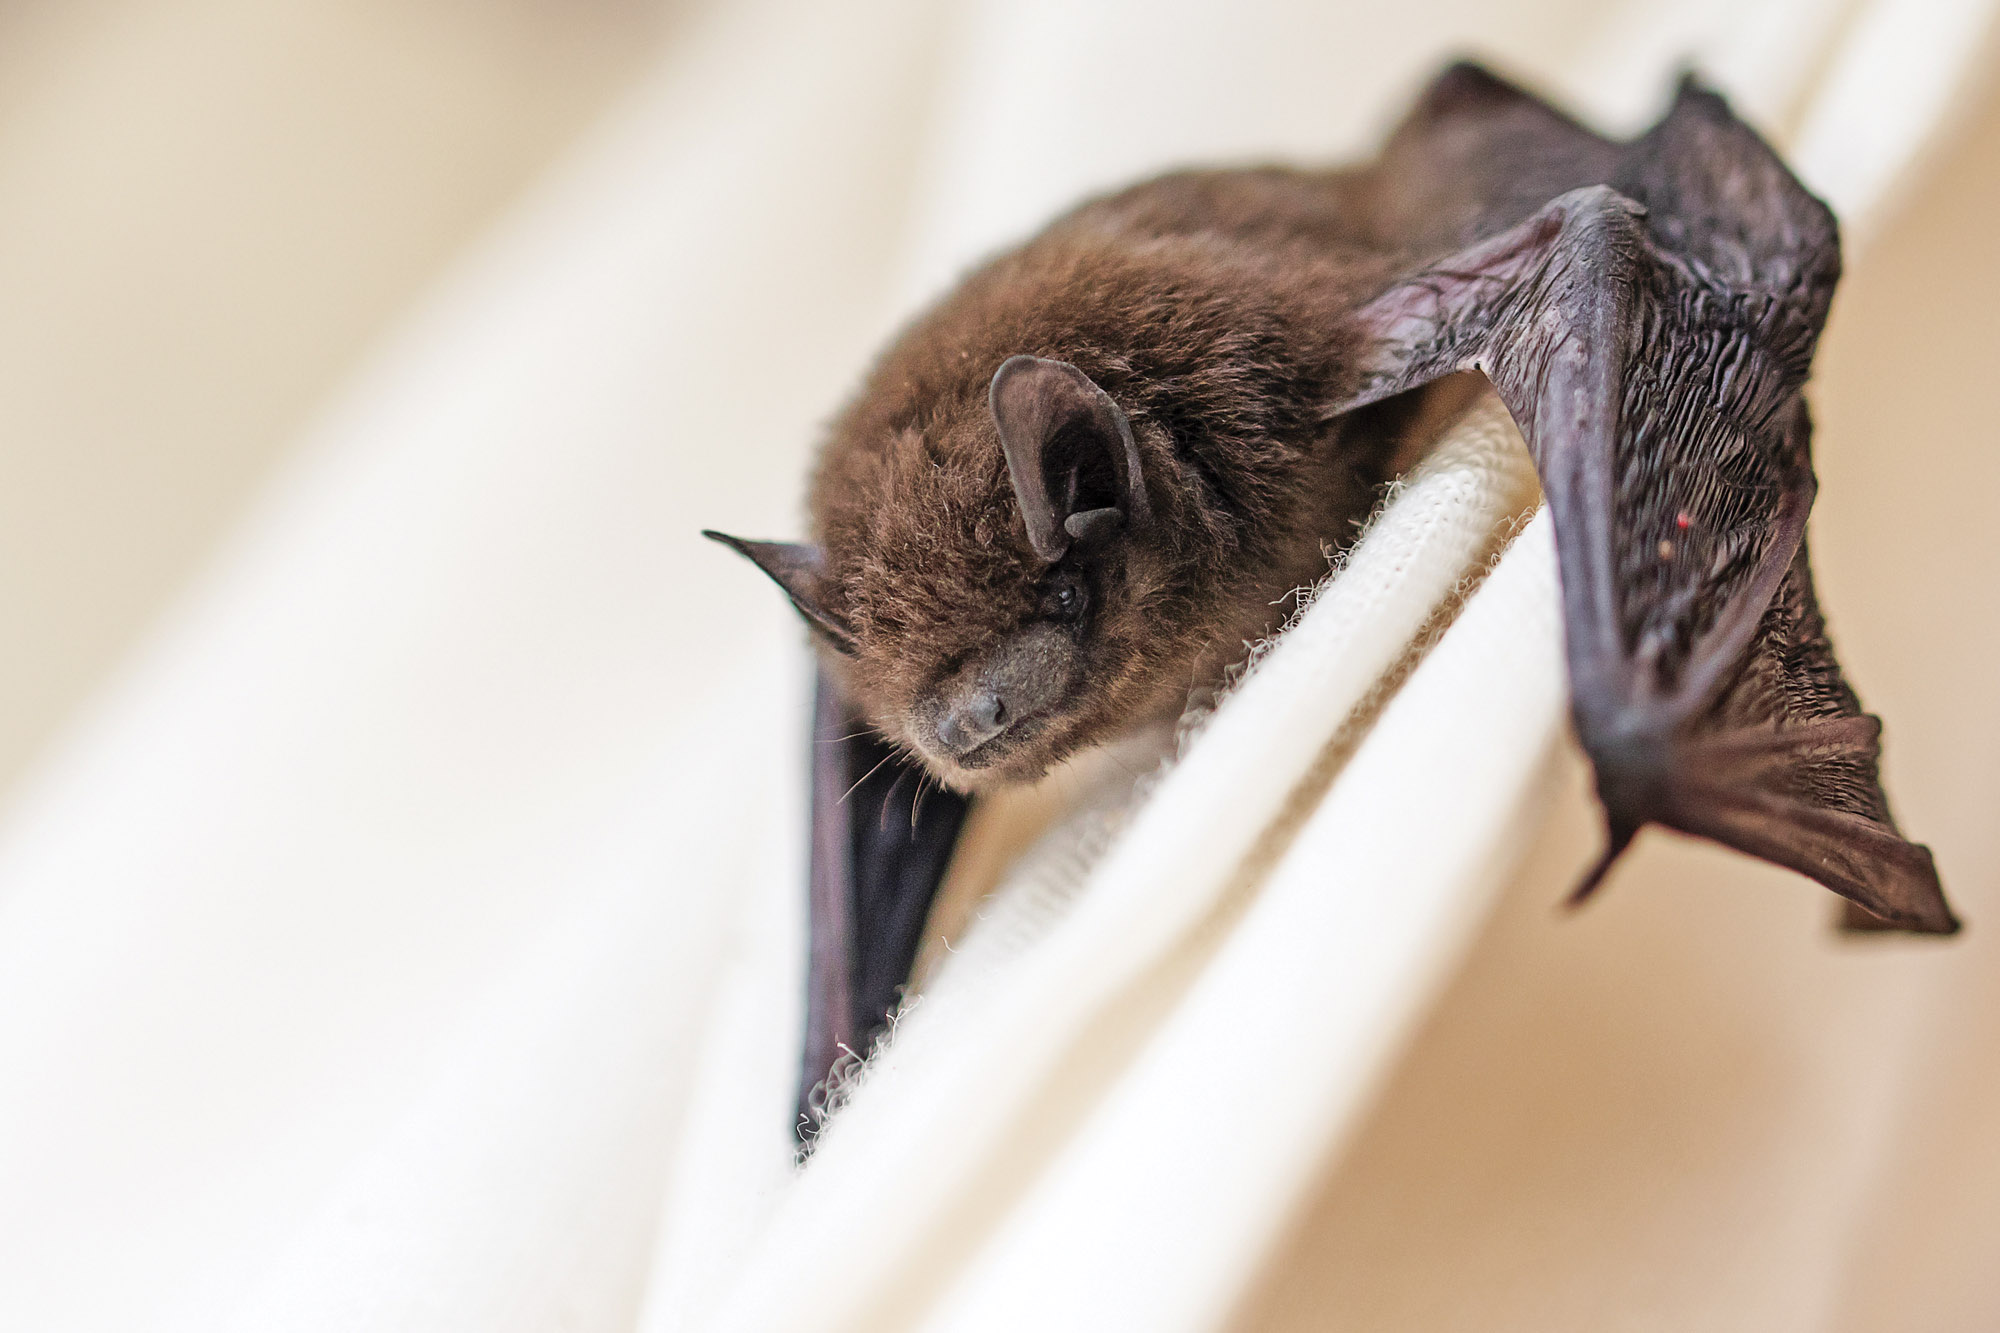 How To Get Rid Of Bats Old House